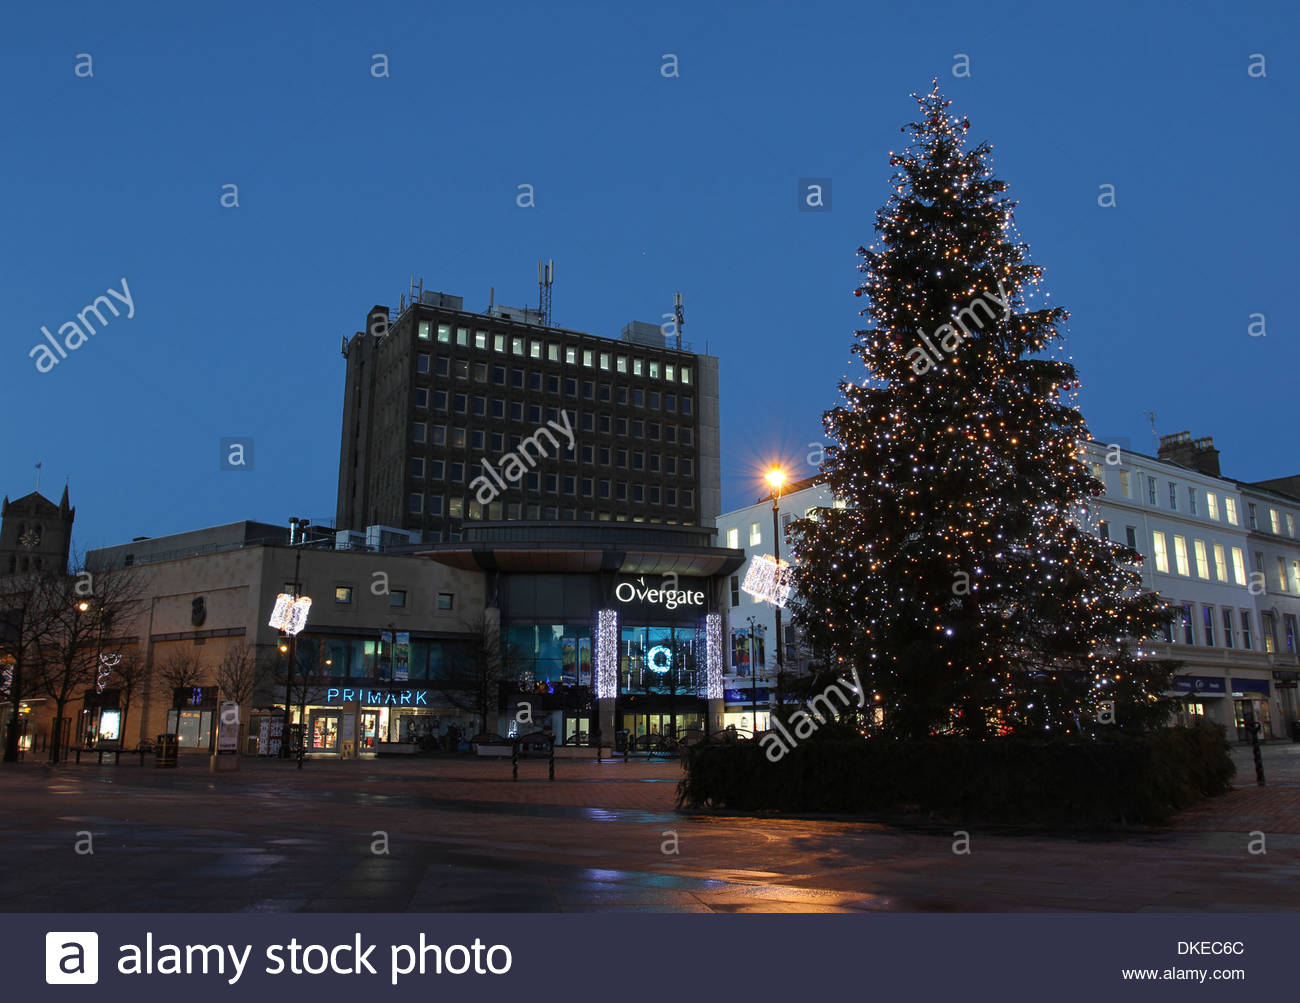 Christmas tree and Overgate shopping centre Dundee Scotland  December 2013 - Stock Image